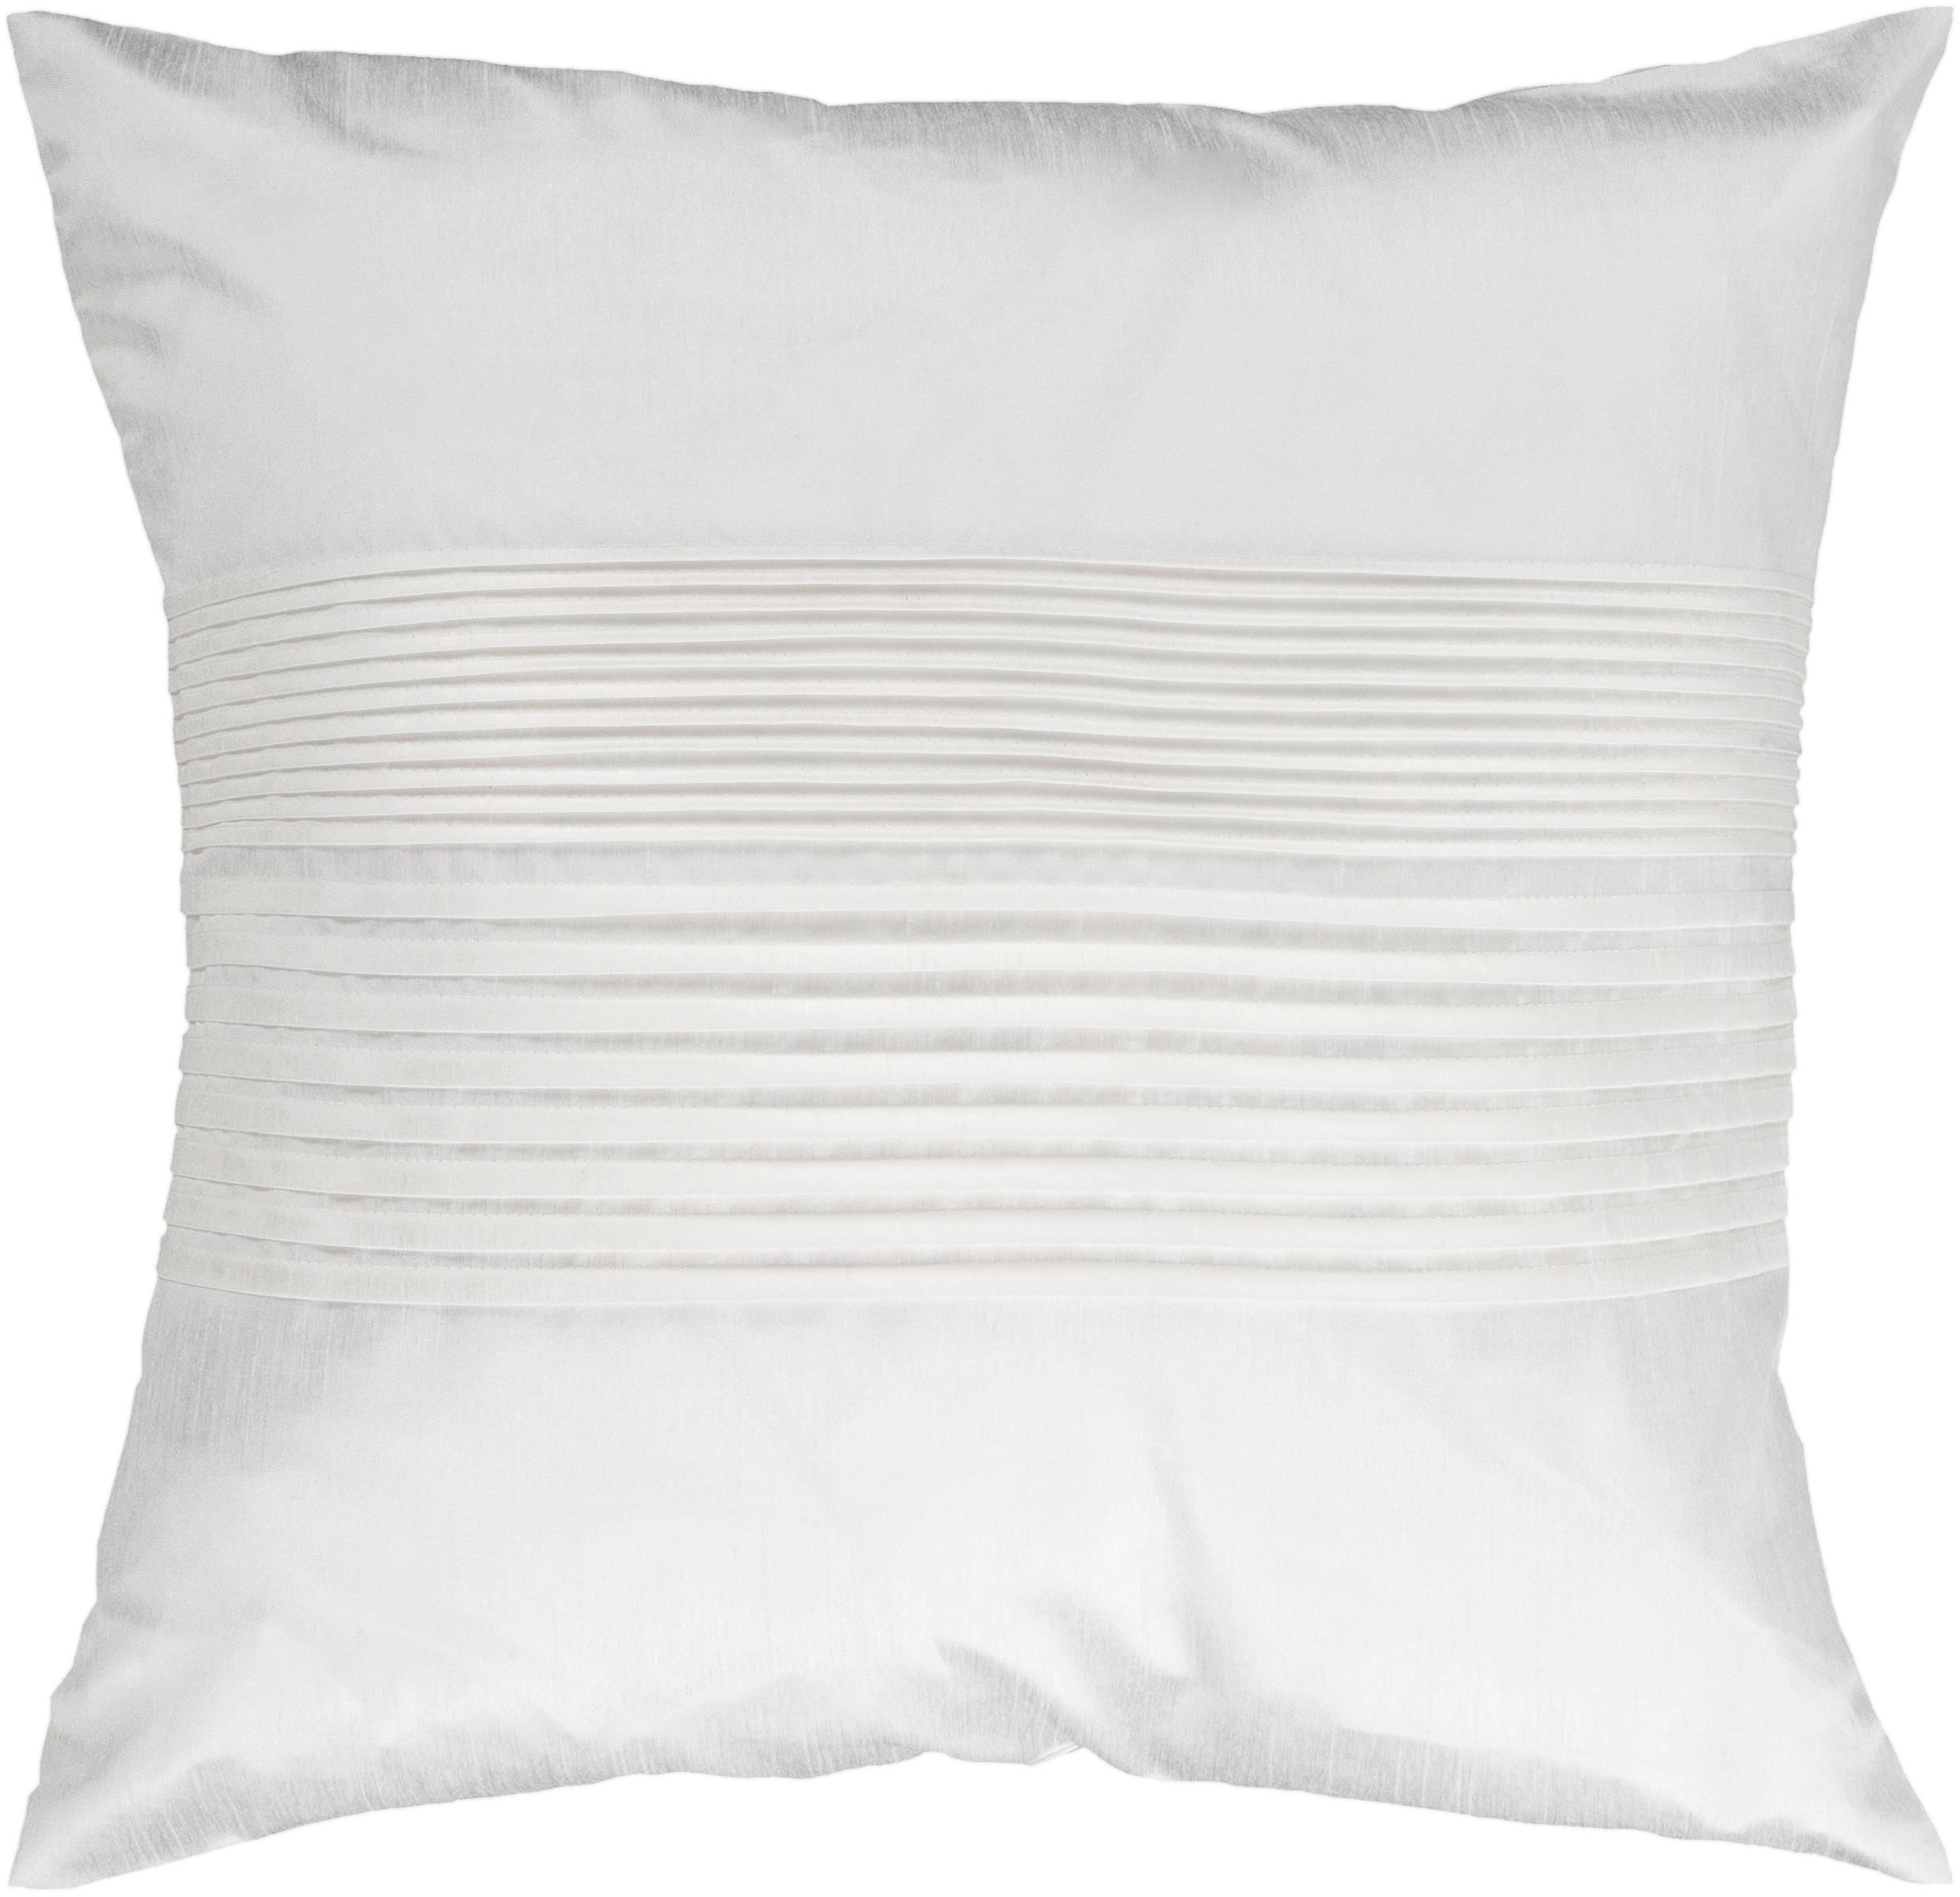 "Surya Pillows 22"" x 22"" Pillow - Item Number: HH017-2222P"